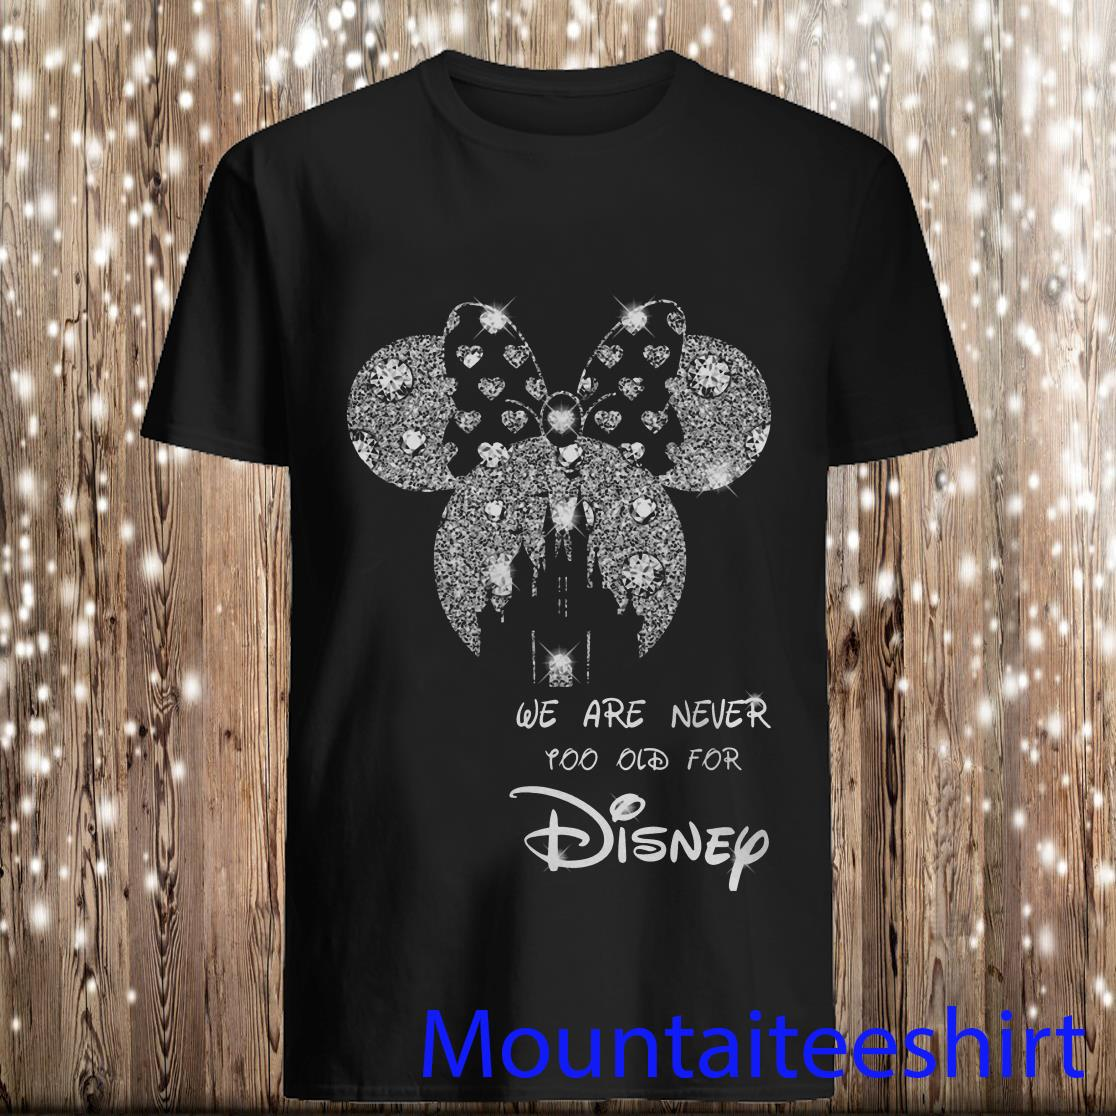 We Are Never Too Old for Mickey Mouse Disney T-Shirt